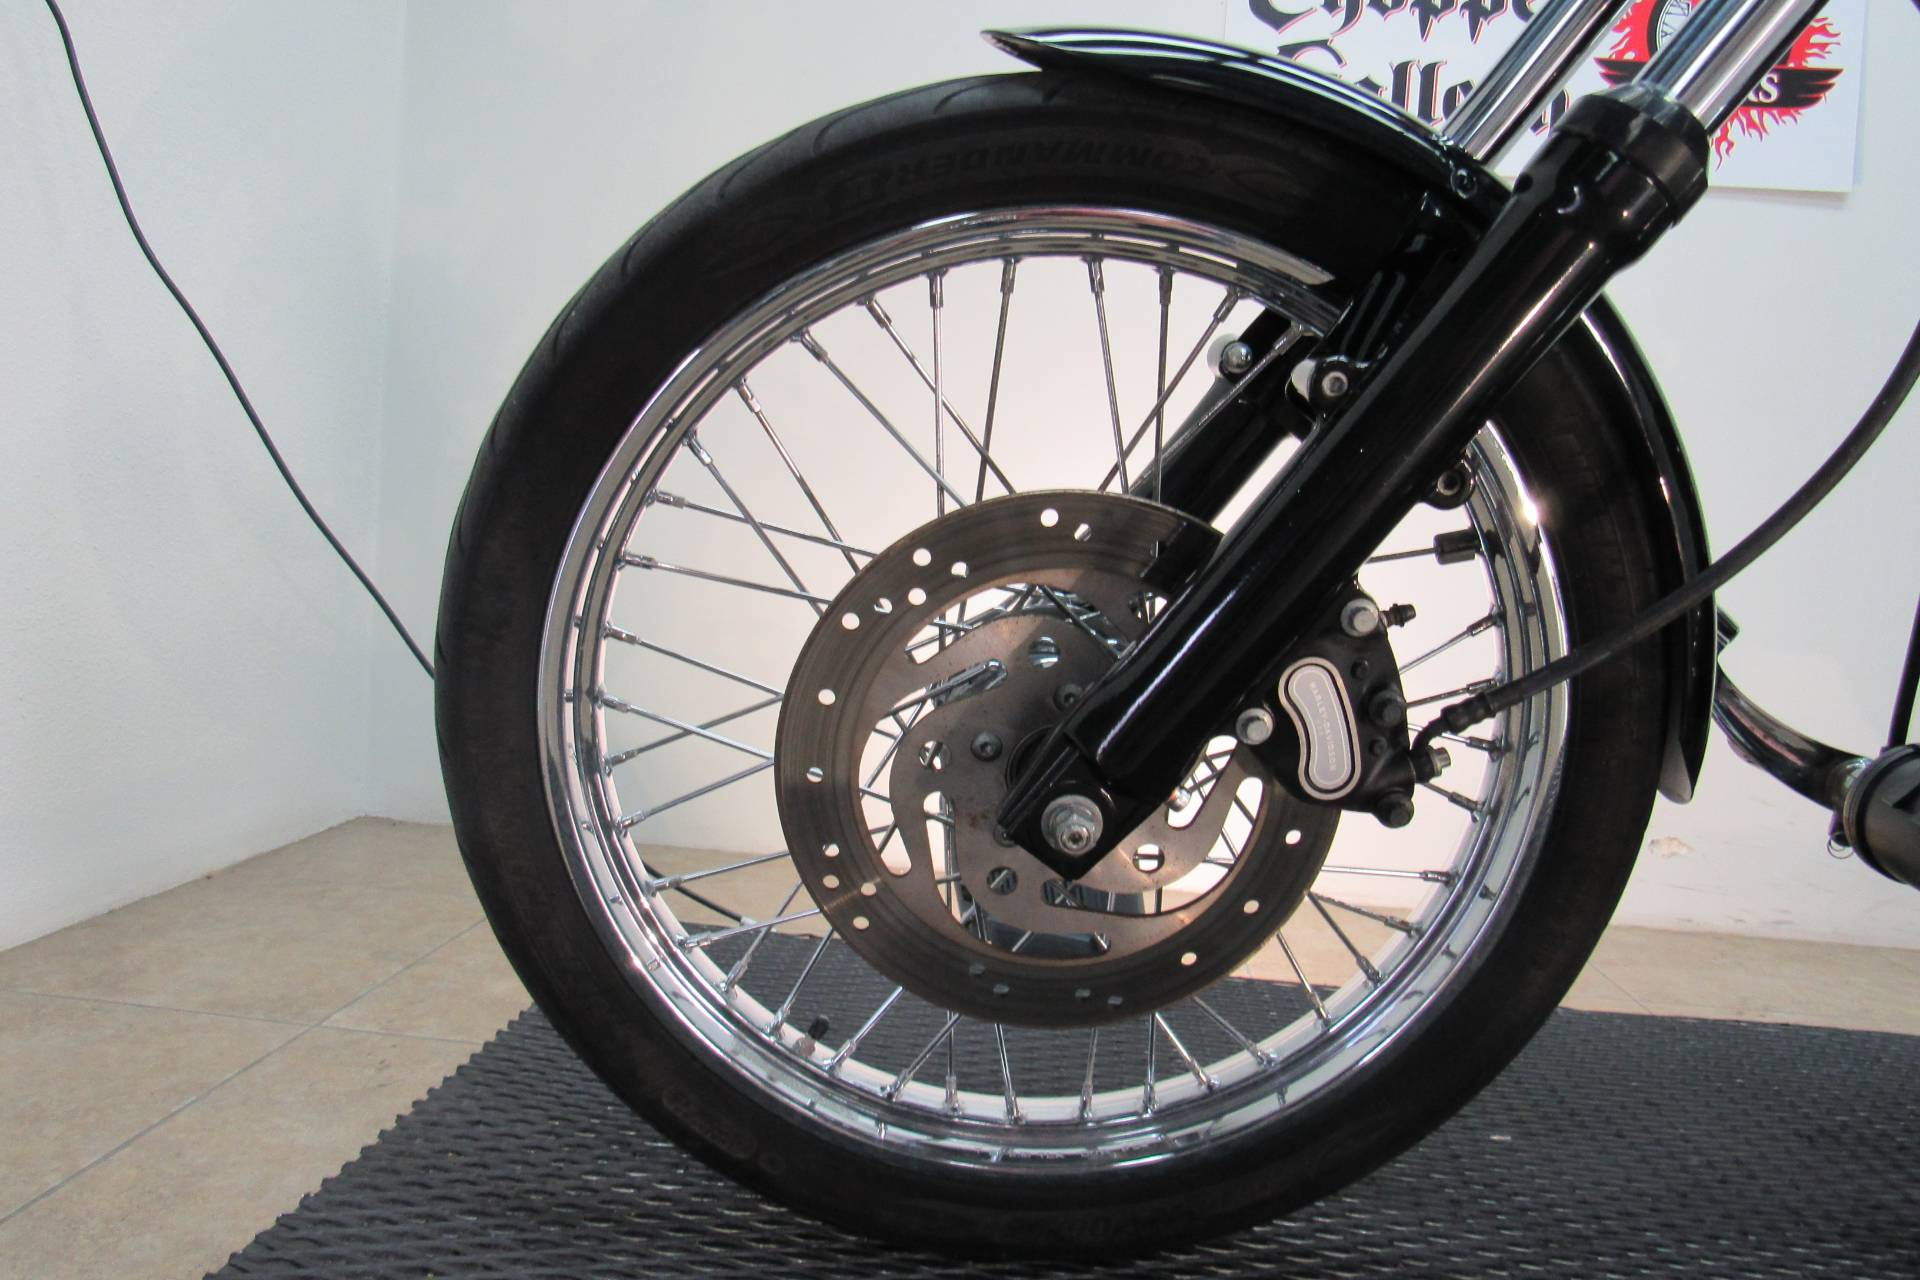 2005 Harley-Davidson FXDWG/FXDWGI Dyna Wide Glide® in Temecula, California - Photo 25